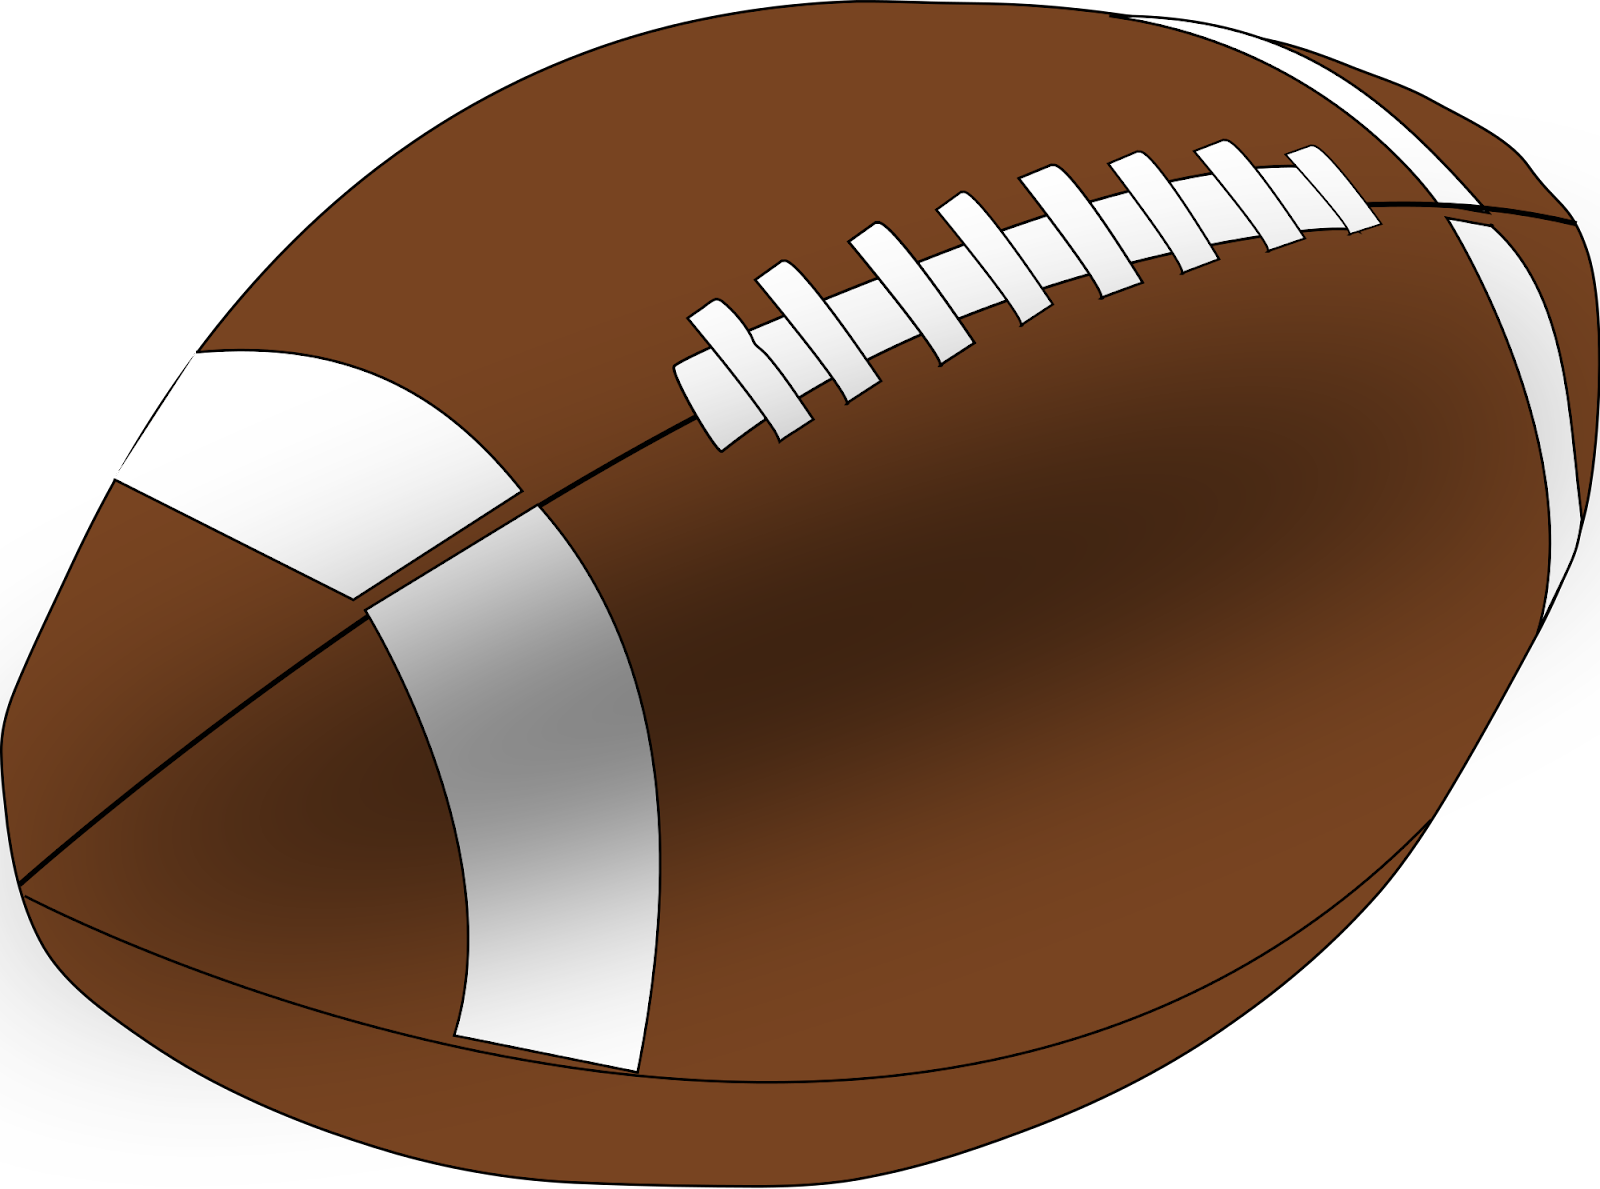 The football used in most ...